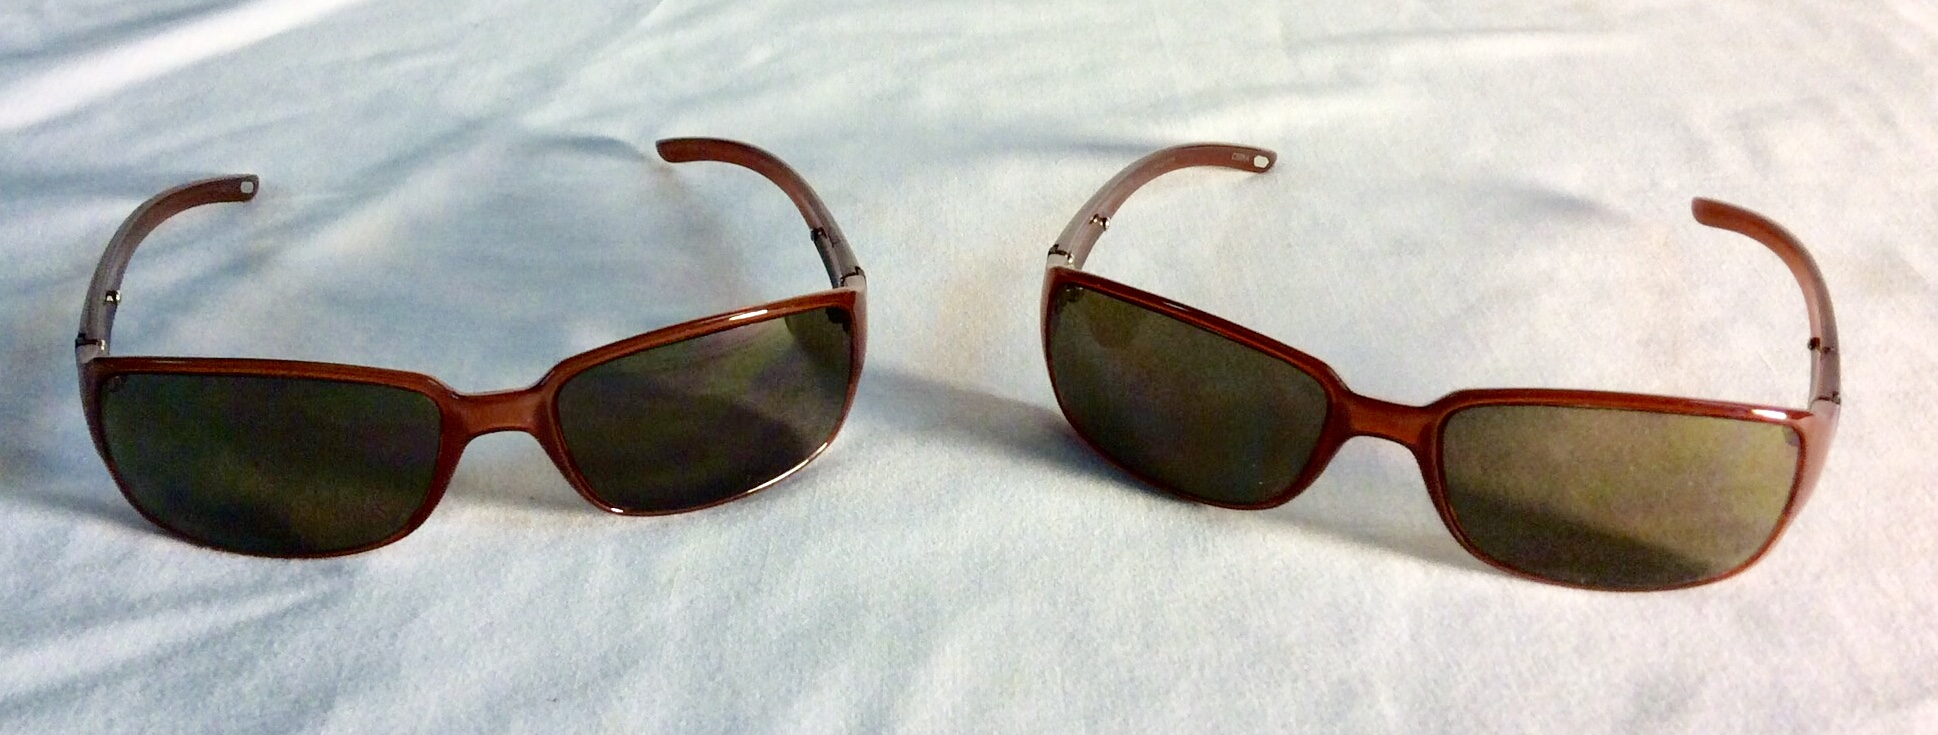 Light brown framed sunglasses